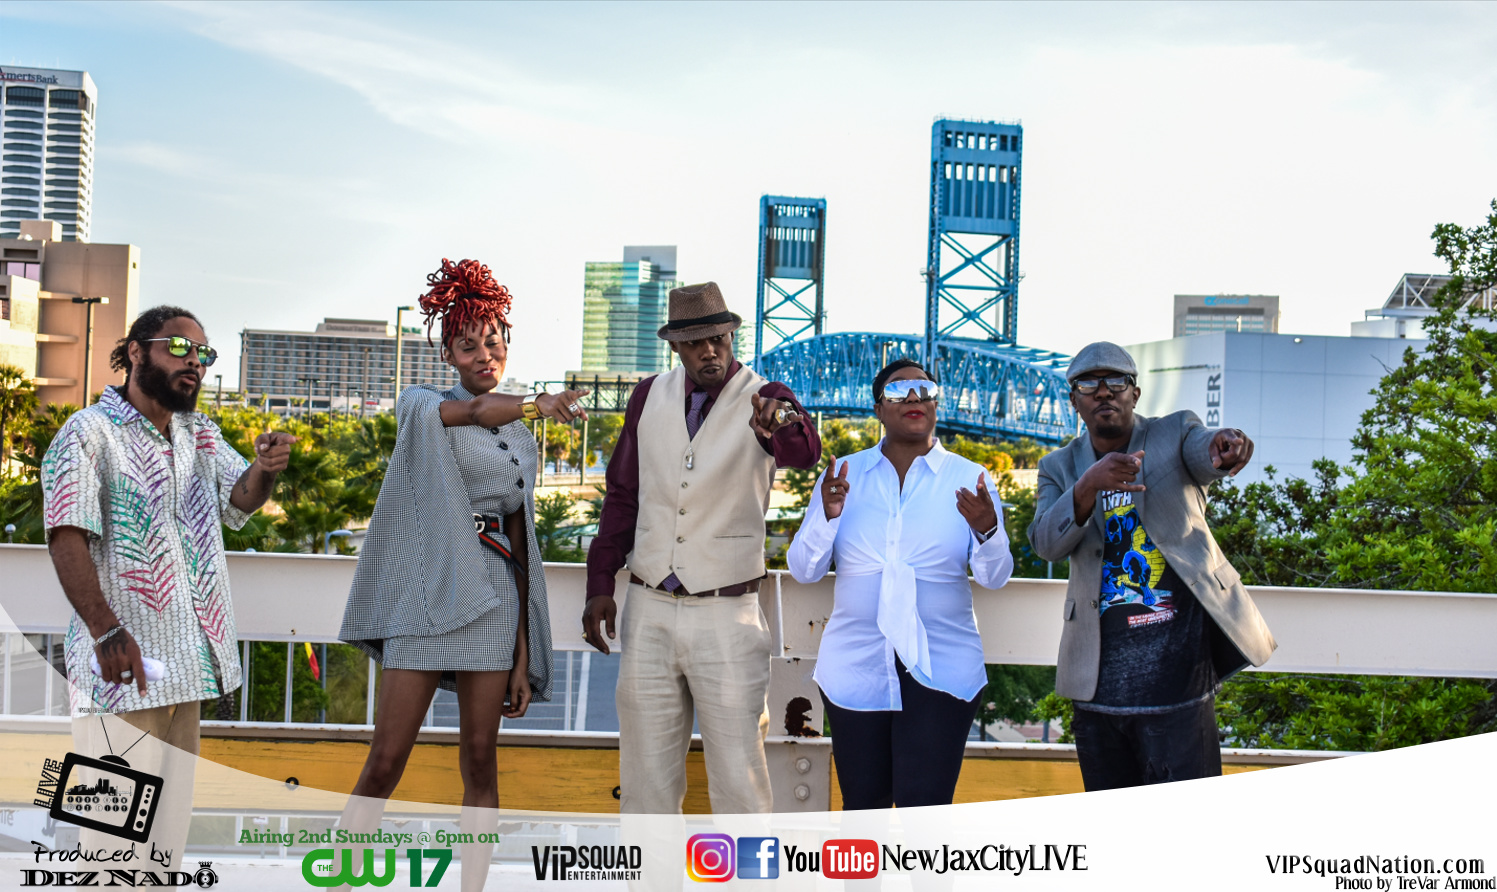 LIVE from New Jax City TV Series on CW